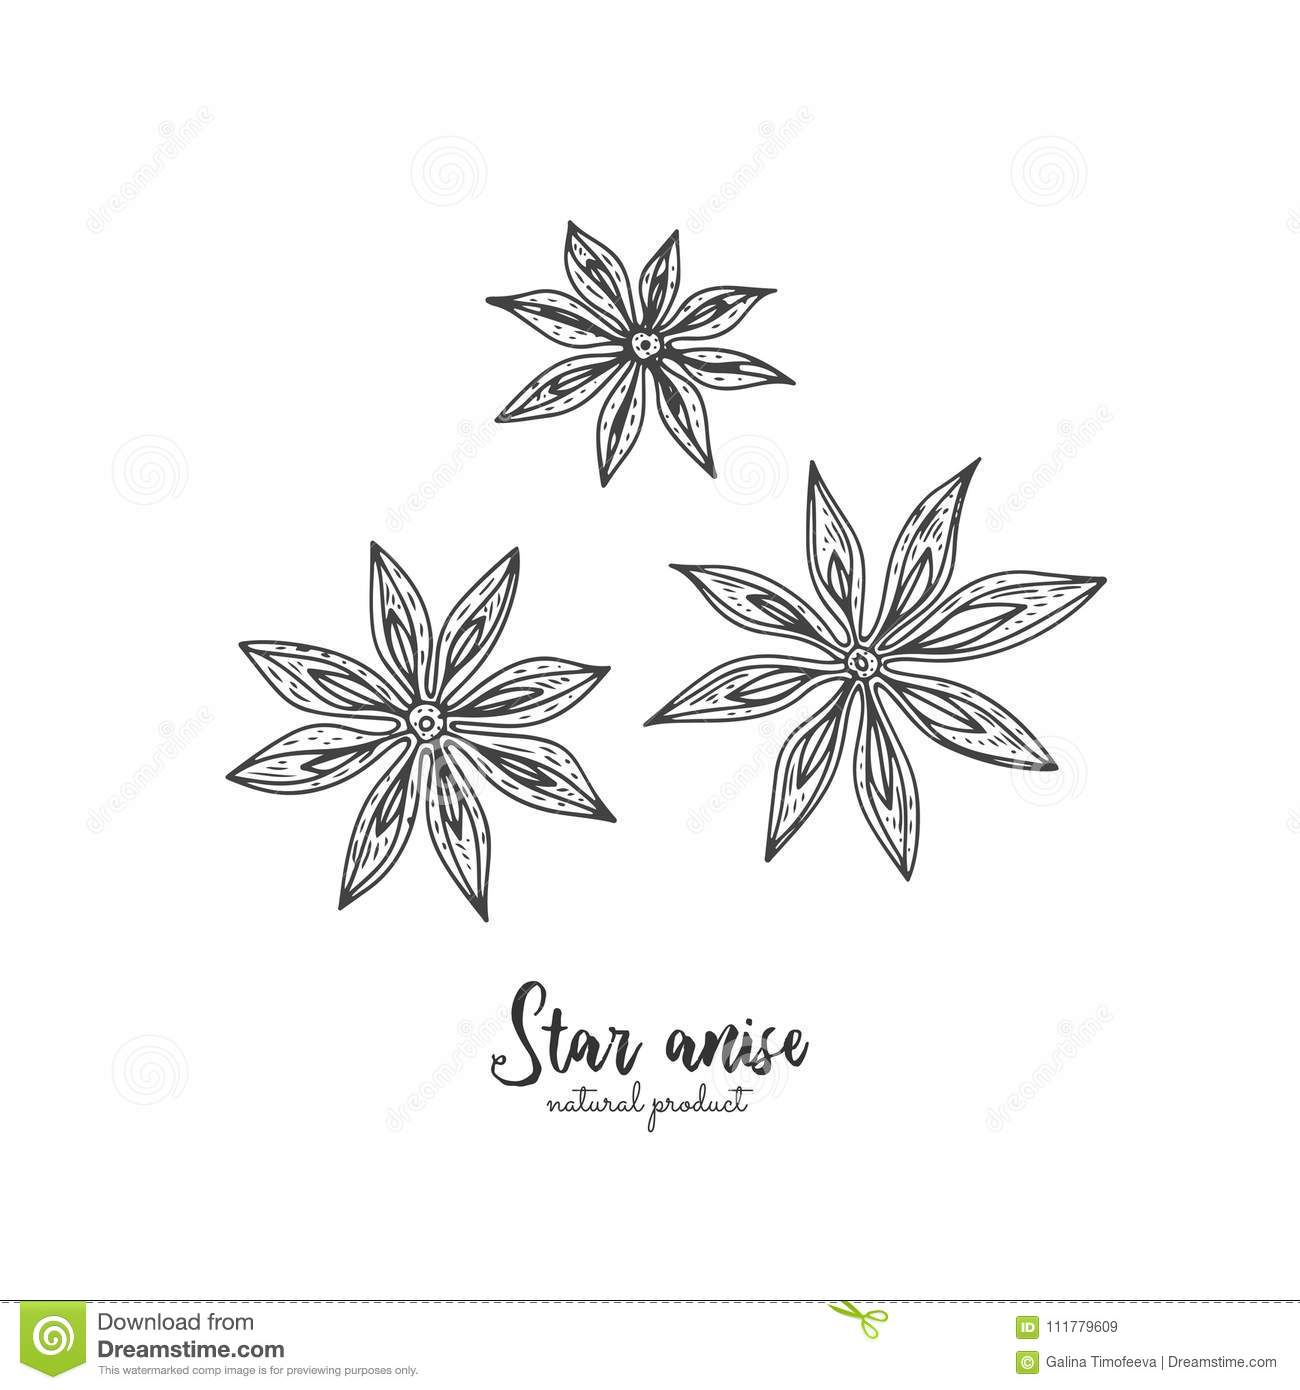 Star anise vector illustration isolated on white background. Vector vintage spices illustration. Detailed natural spices